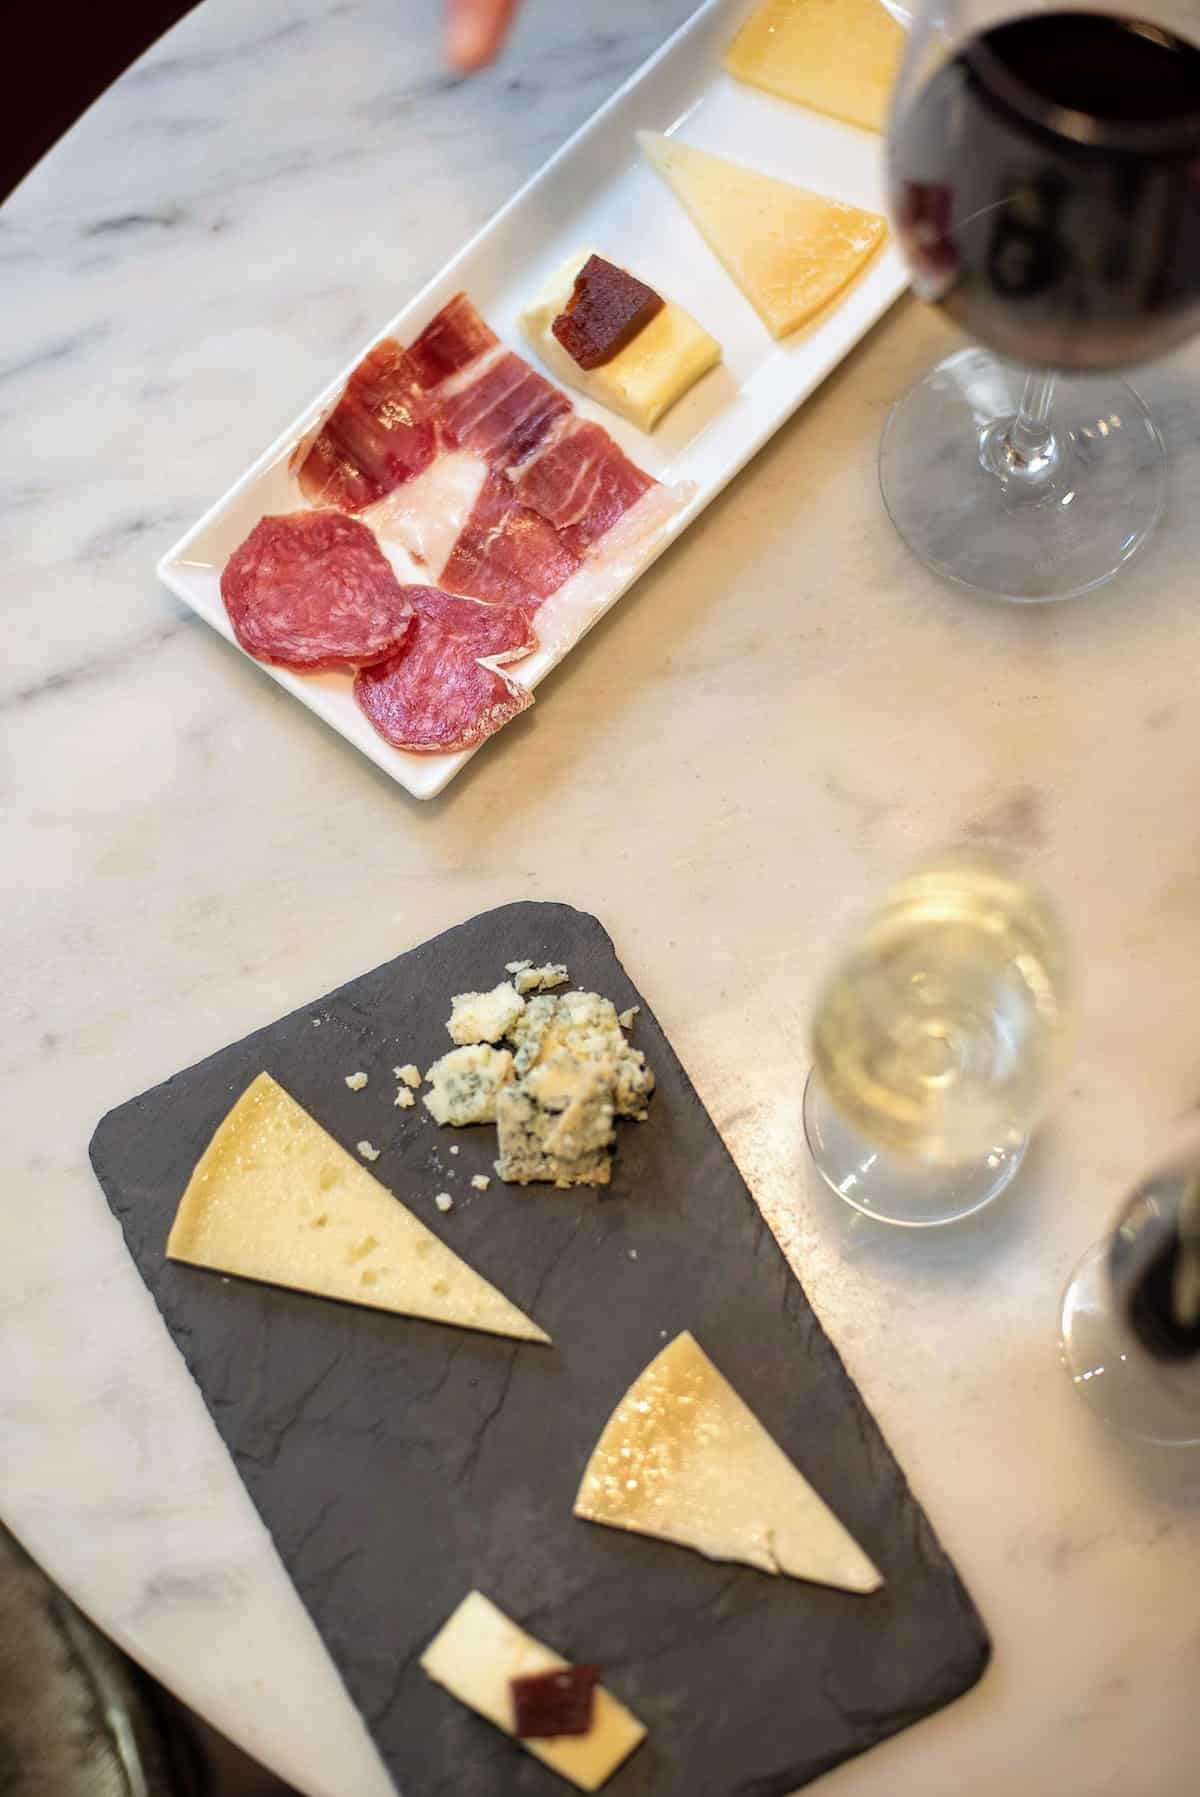 Overhead shot of small cheese and charcuterie trays beside two glasses of wine on a marble tabletop